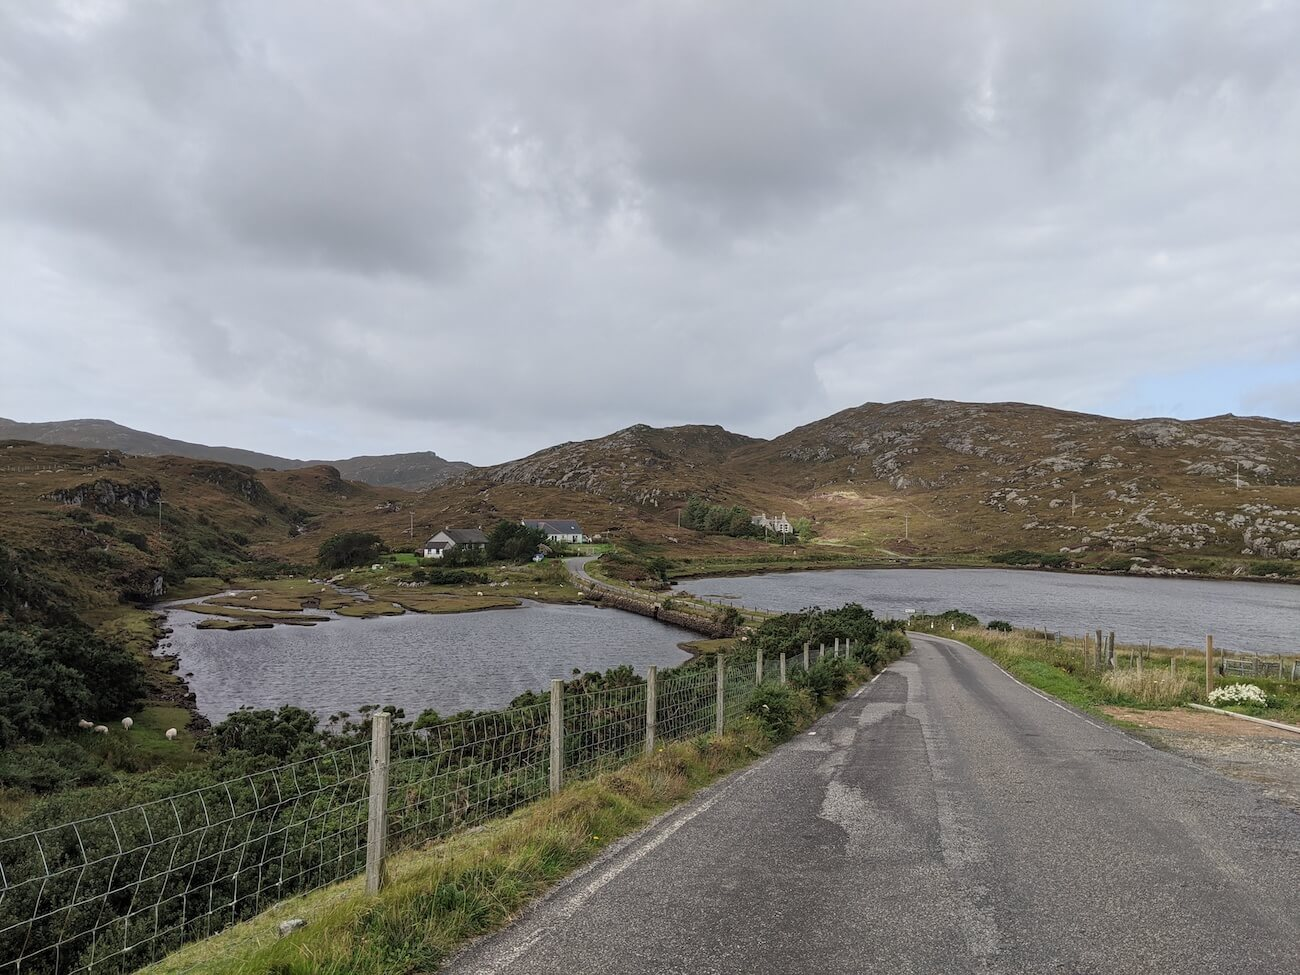 Road trip in the outer hebrides